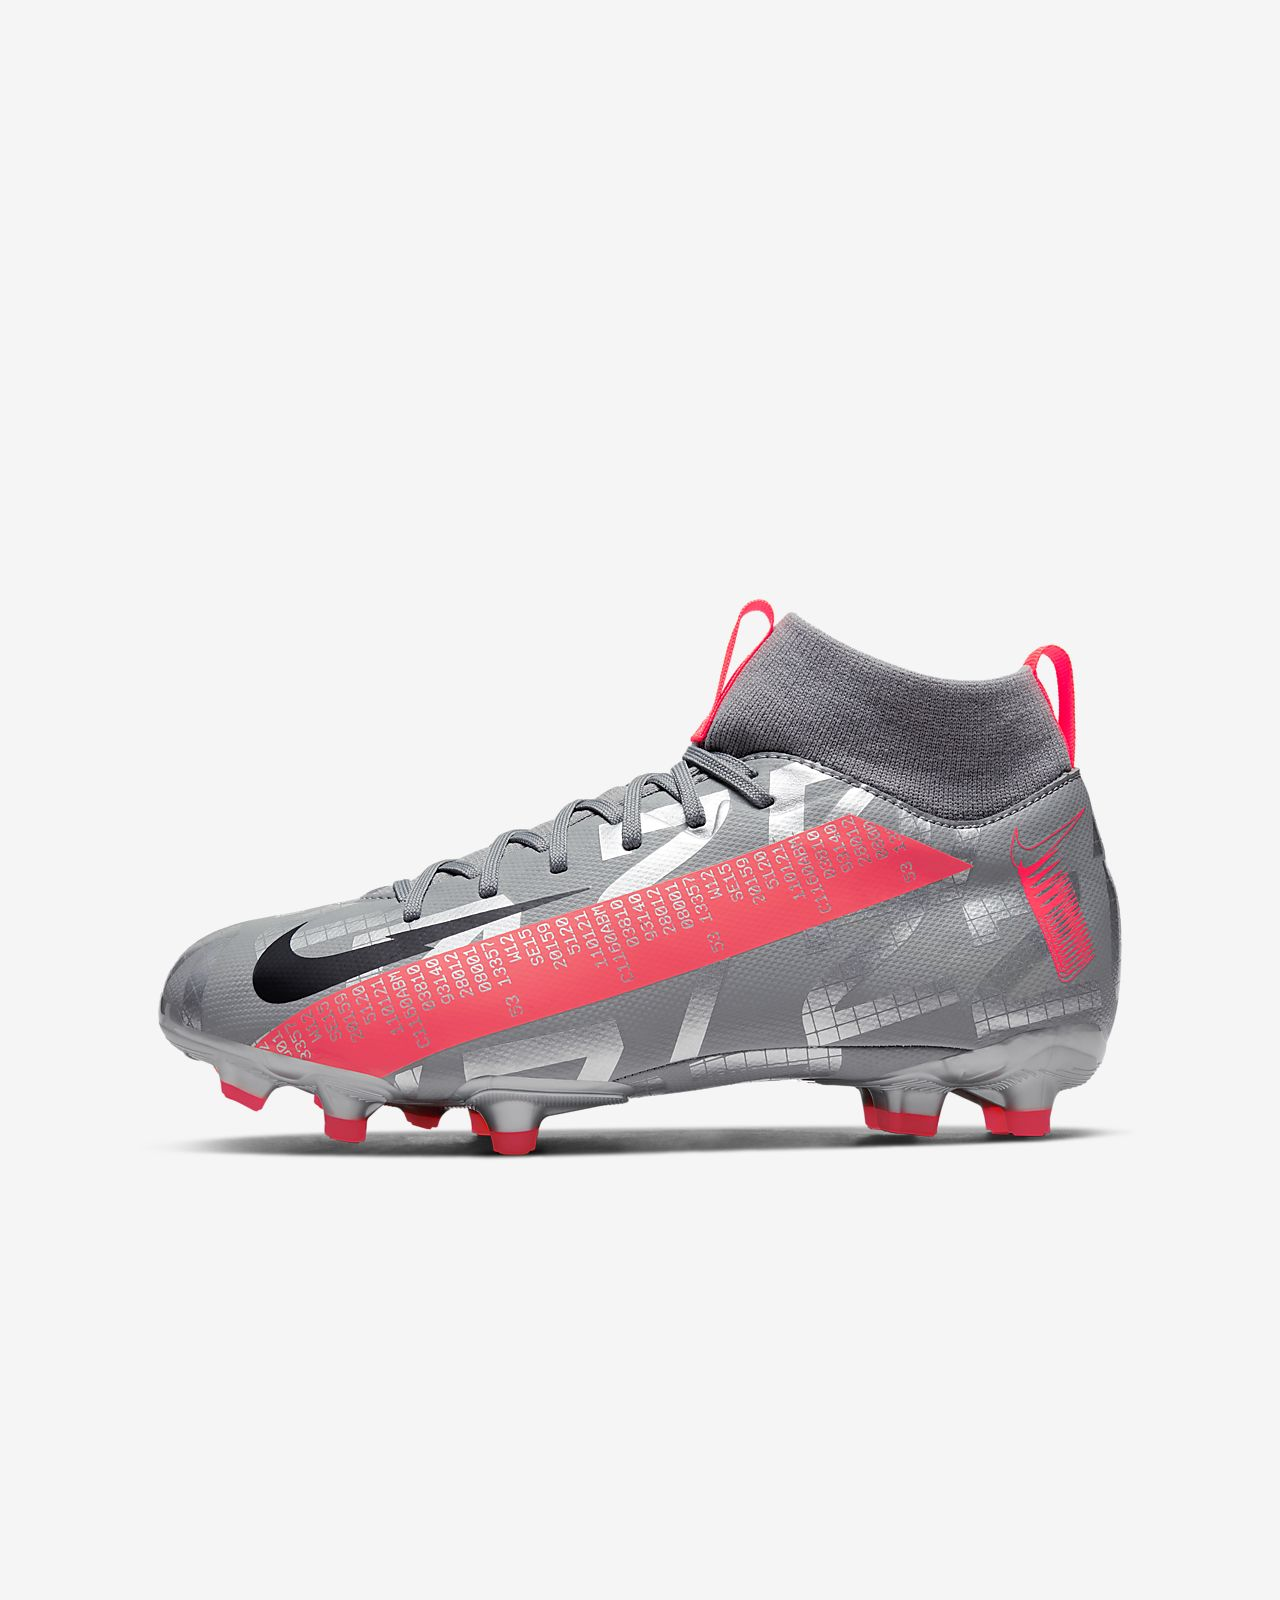 Chaussure de football multi surfaces à crampons Nike Jr. Mercurial Superfly 7 Academy MG pour Enfant